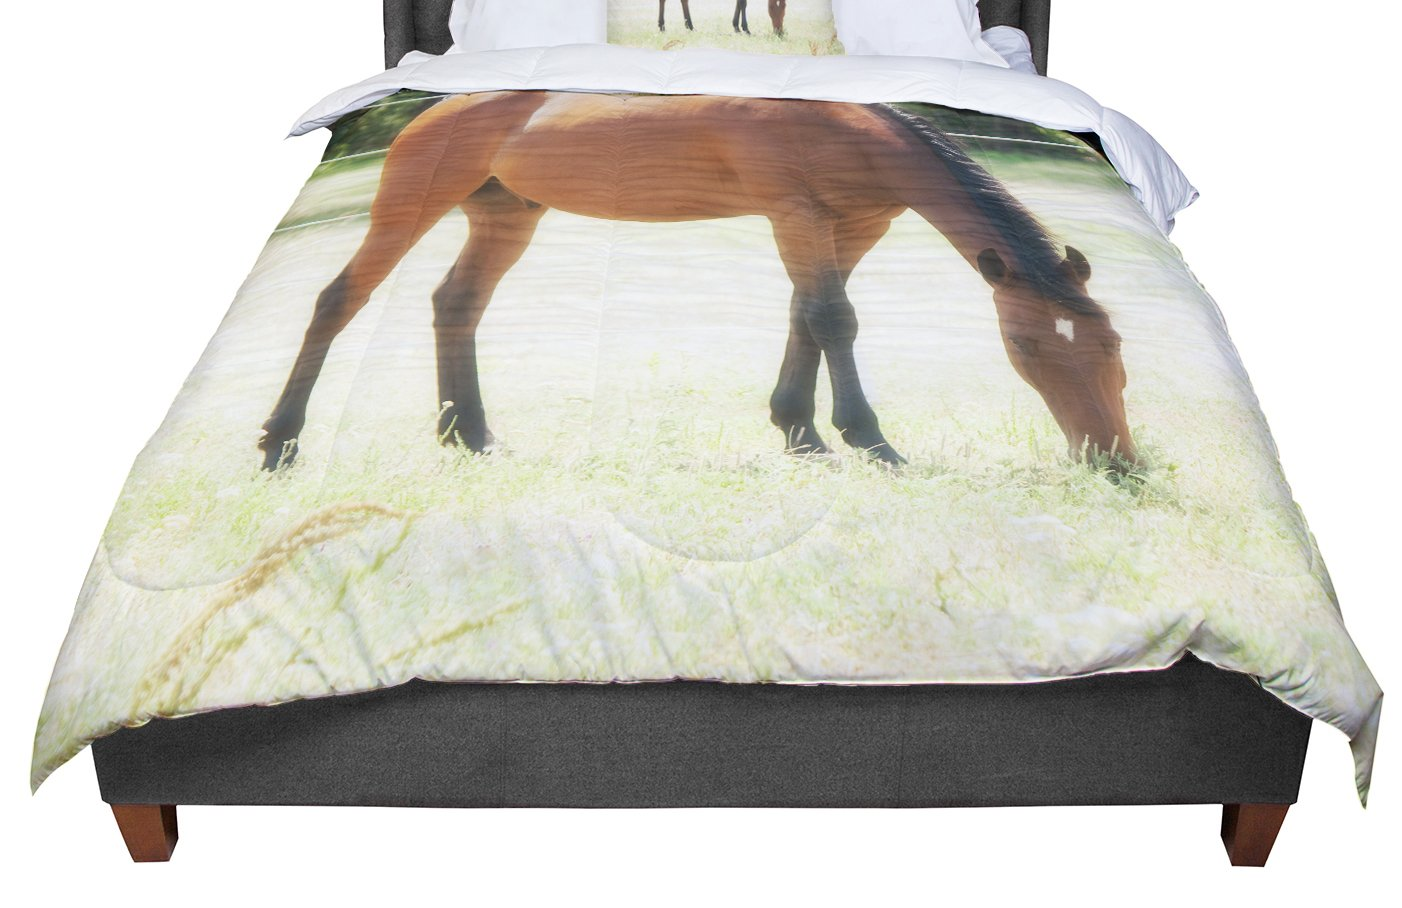 KESS InHouse Sylvia Coomes 'Grazing' Brown Animals Queen Comforter, 88' X 88'